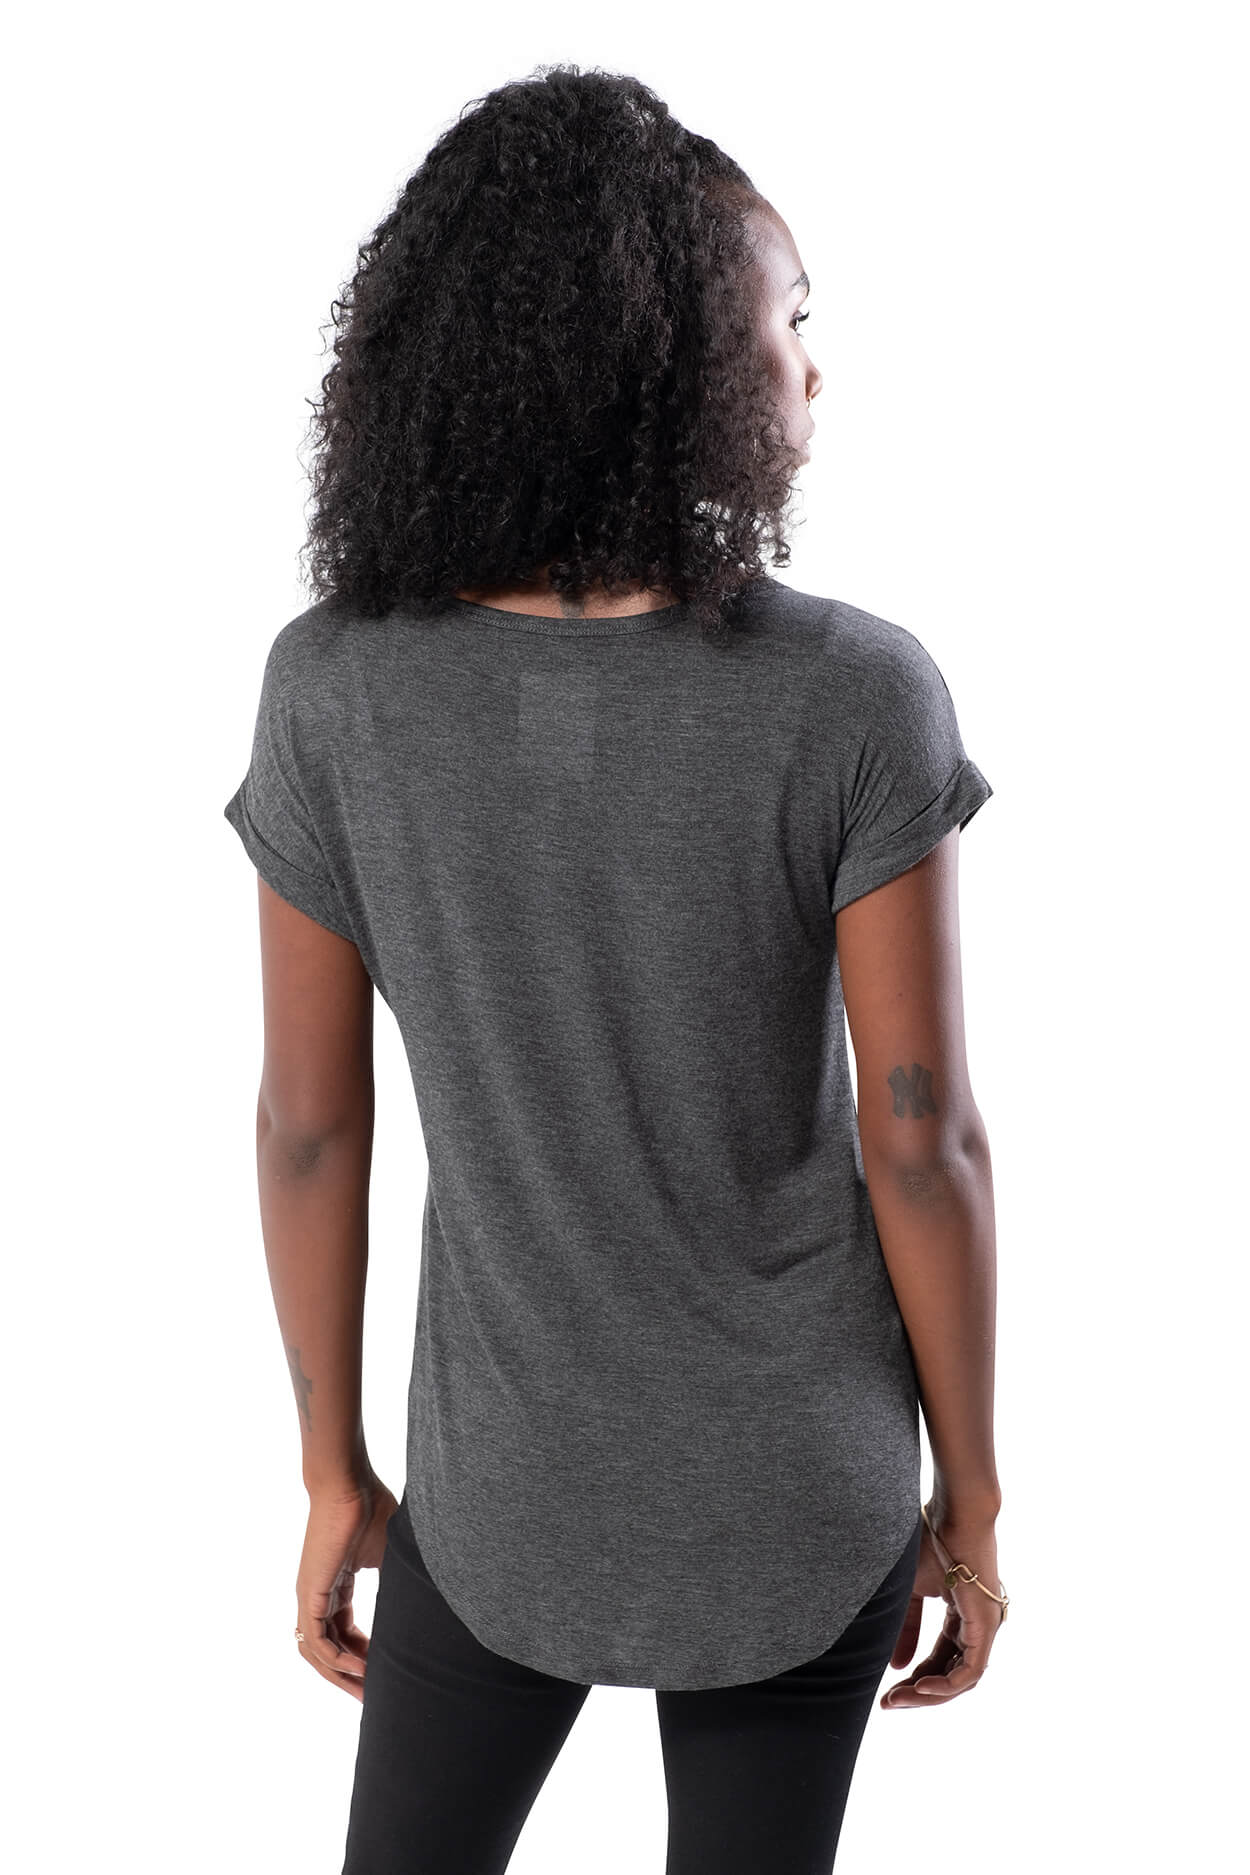 NFL Oakland Raiders Women's V-Neck Tee|Oakland Raiders